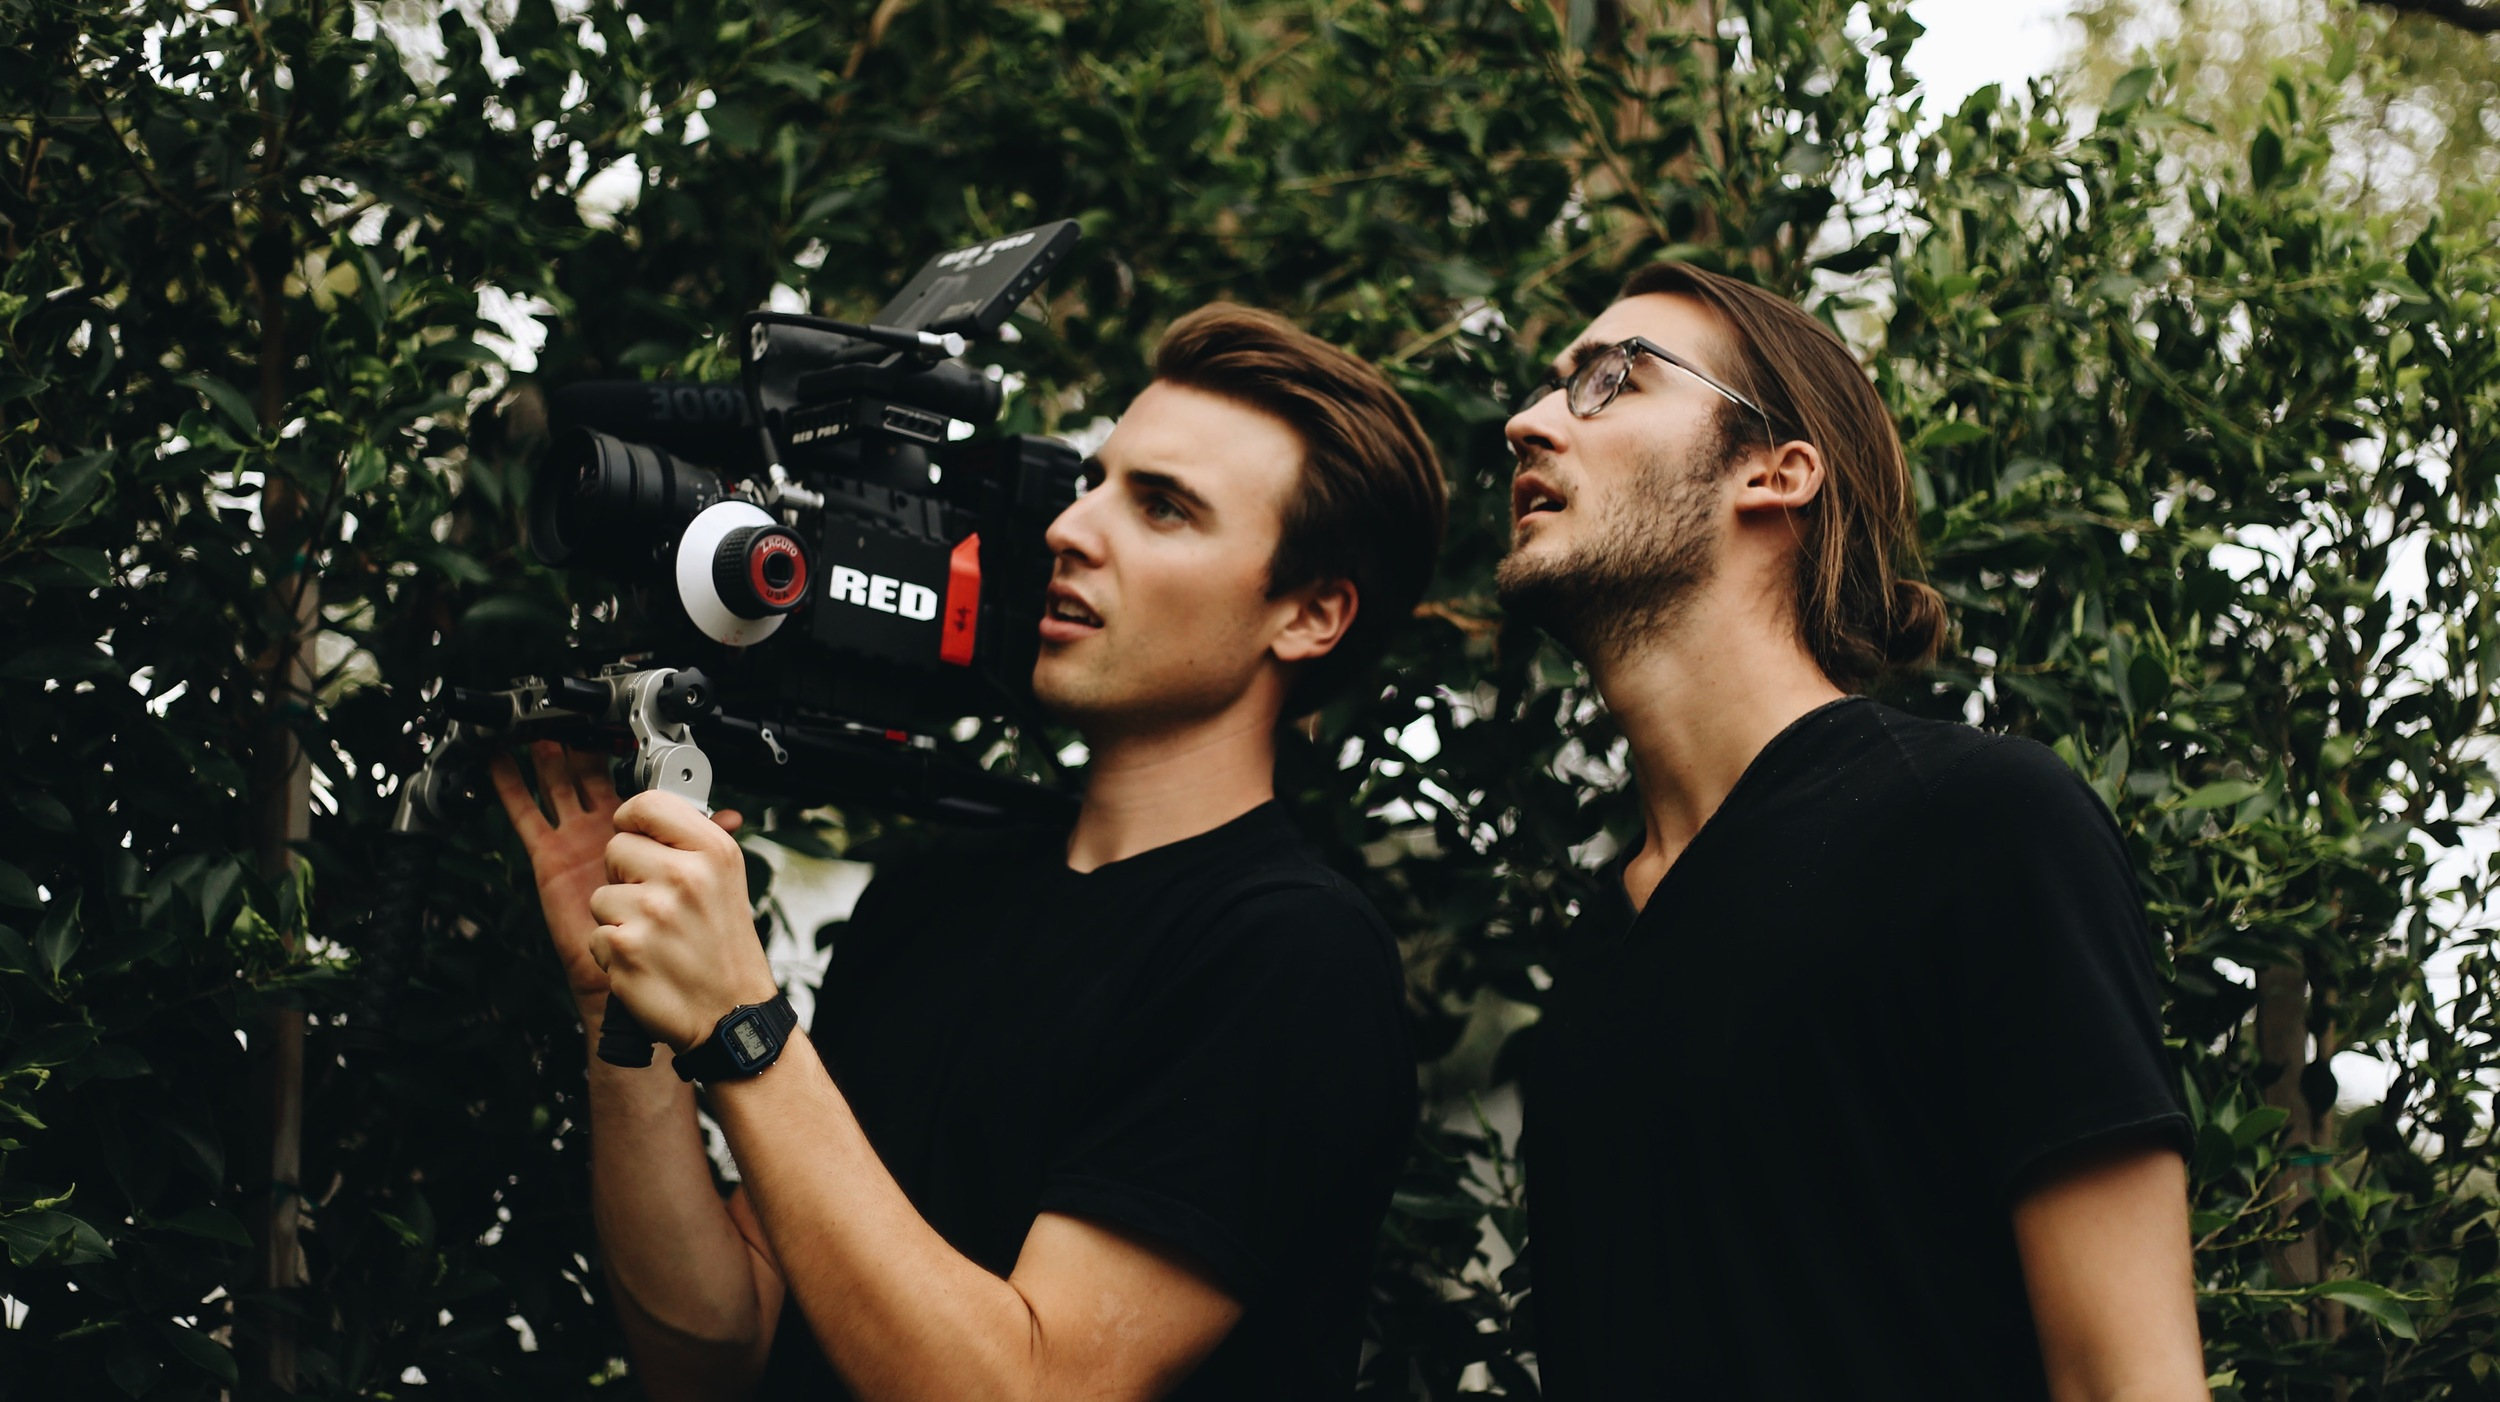 Will Anderson and David Gwynn, co-founders of Woodwalk behind-the-scenes.